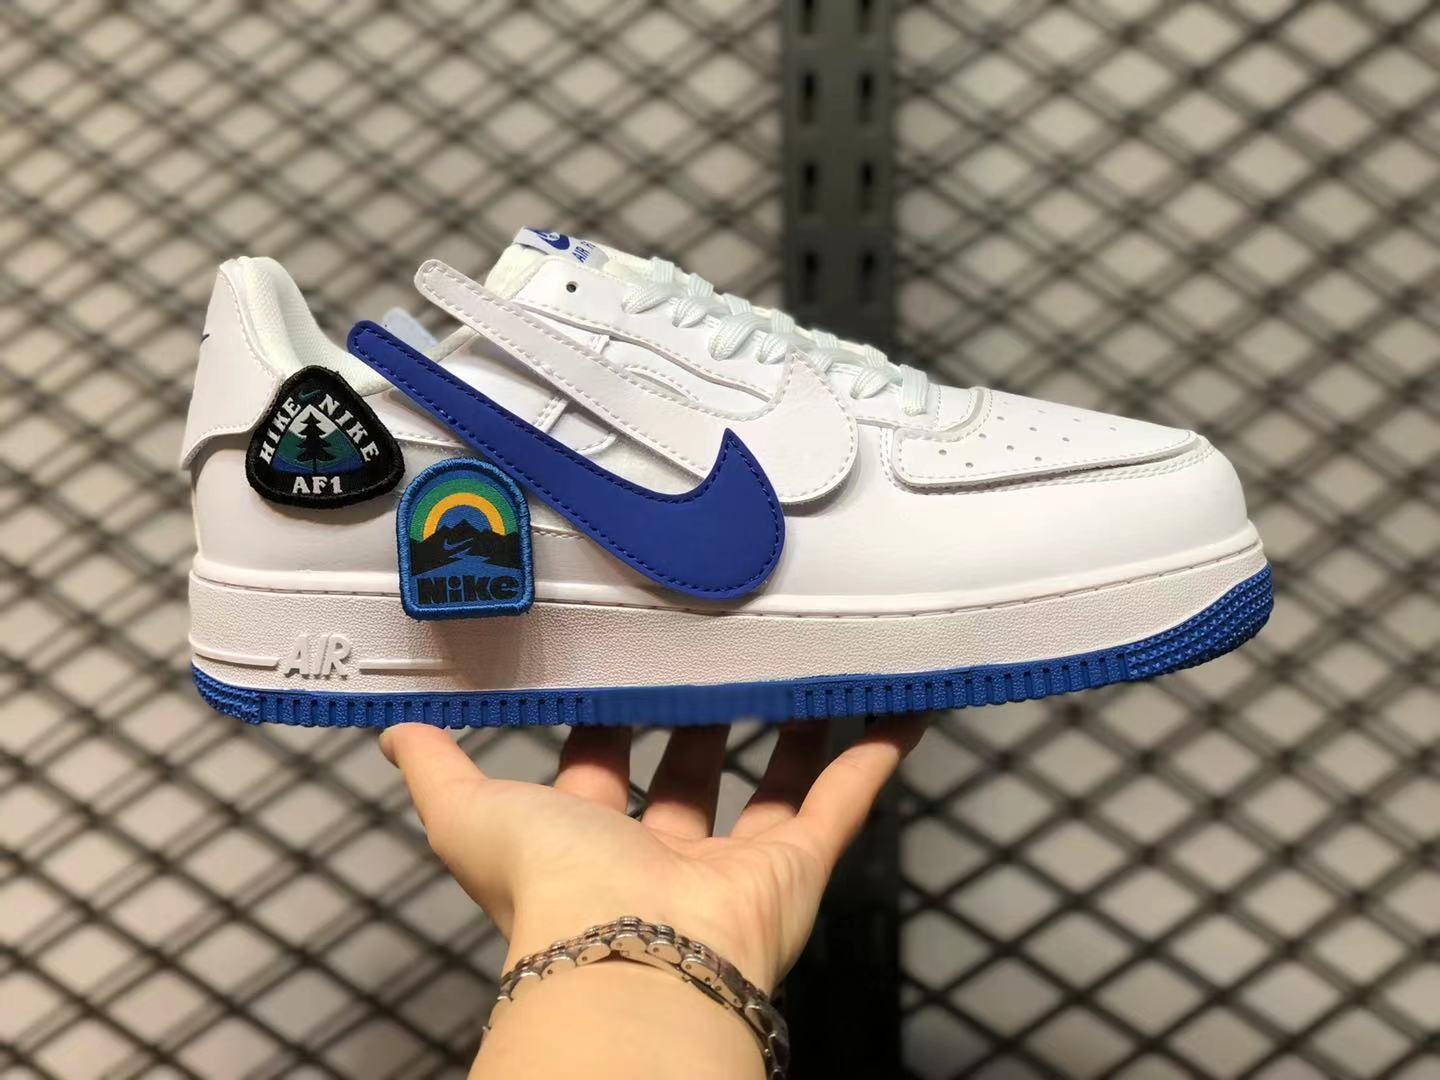 White Blue Velcro Air Force 1 Low With Outdoor-Inspired Patches